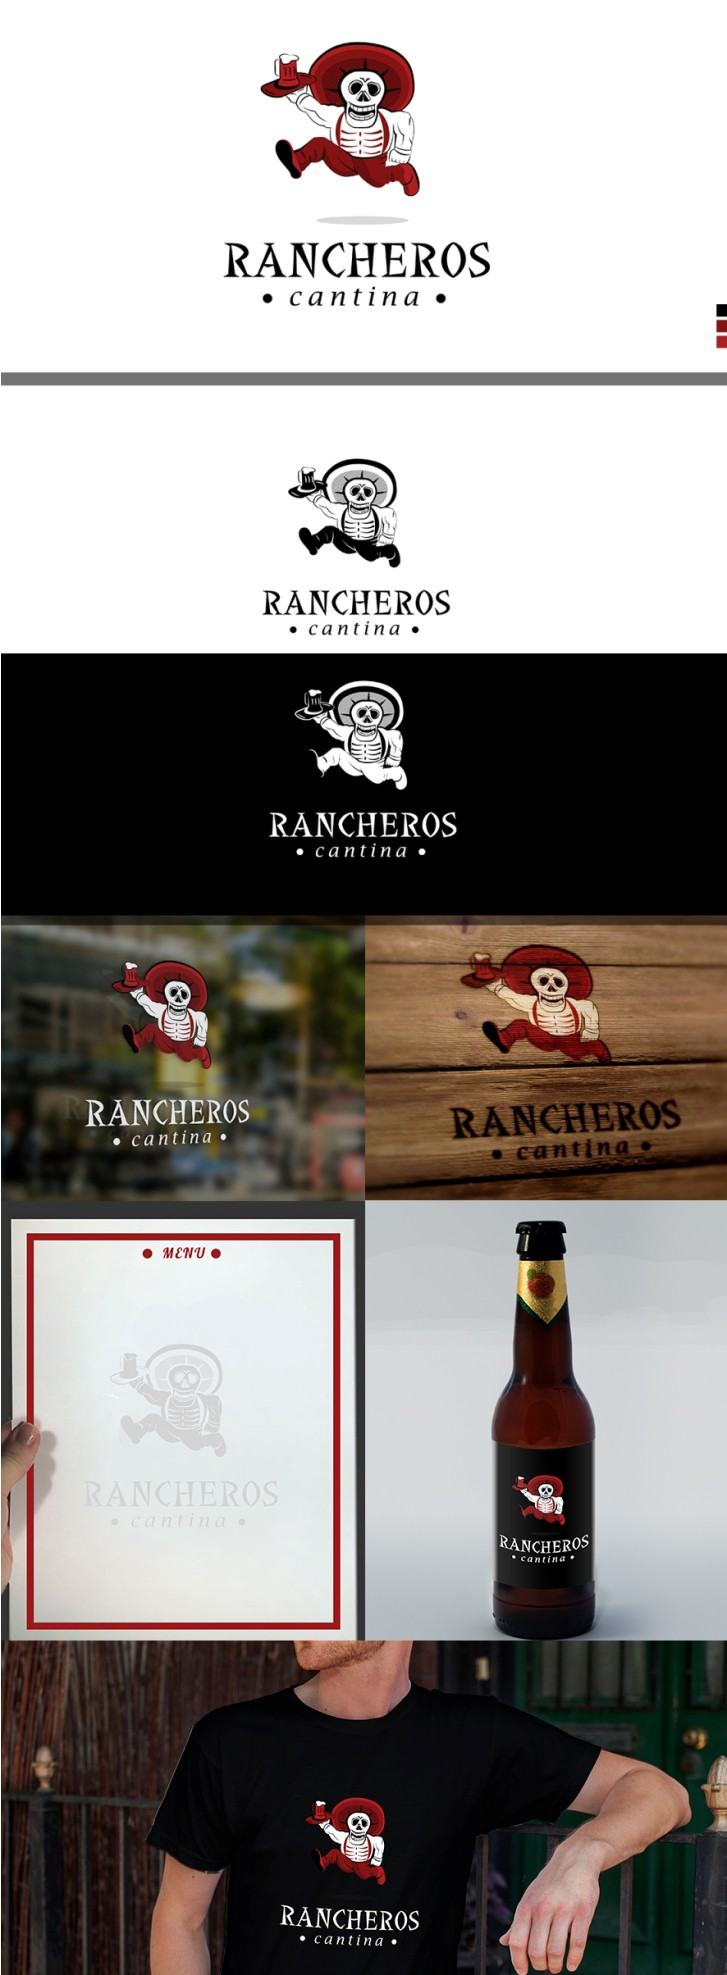 Create a modern, fun logo for a new latin american restaurant